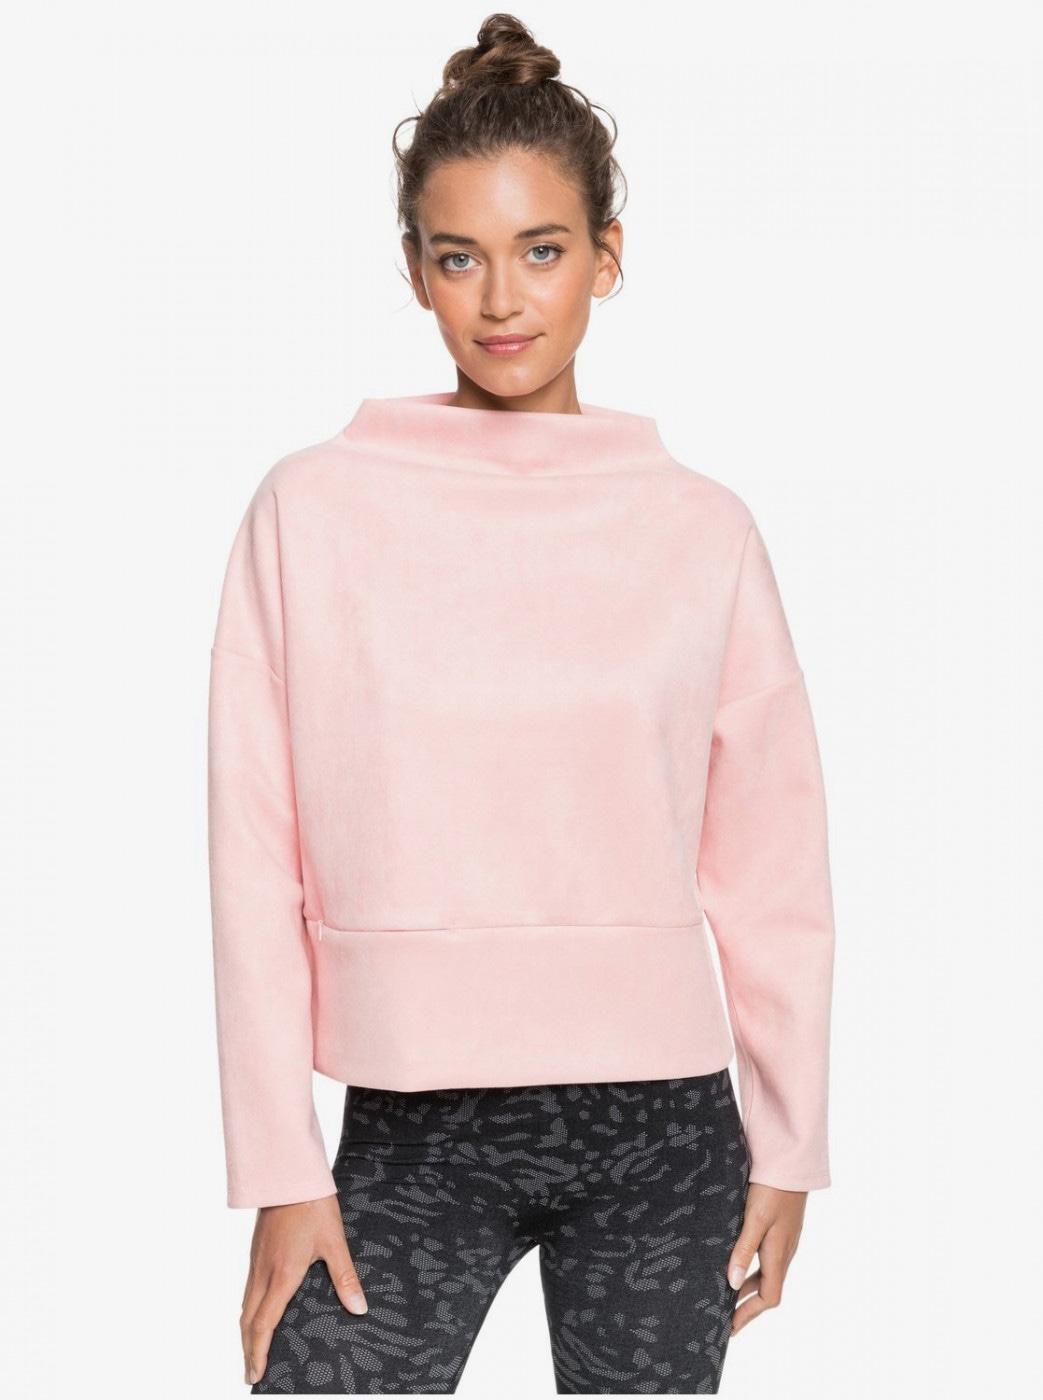 Women's sweatshirt ROXY CASABLANCA DREAM